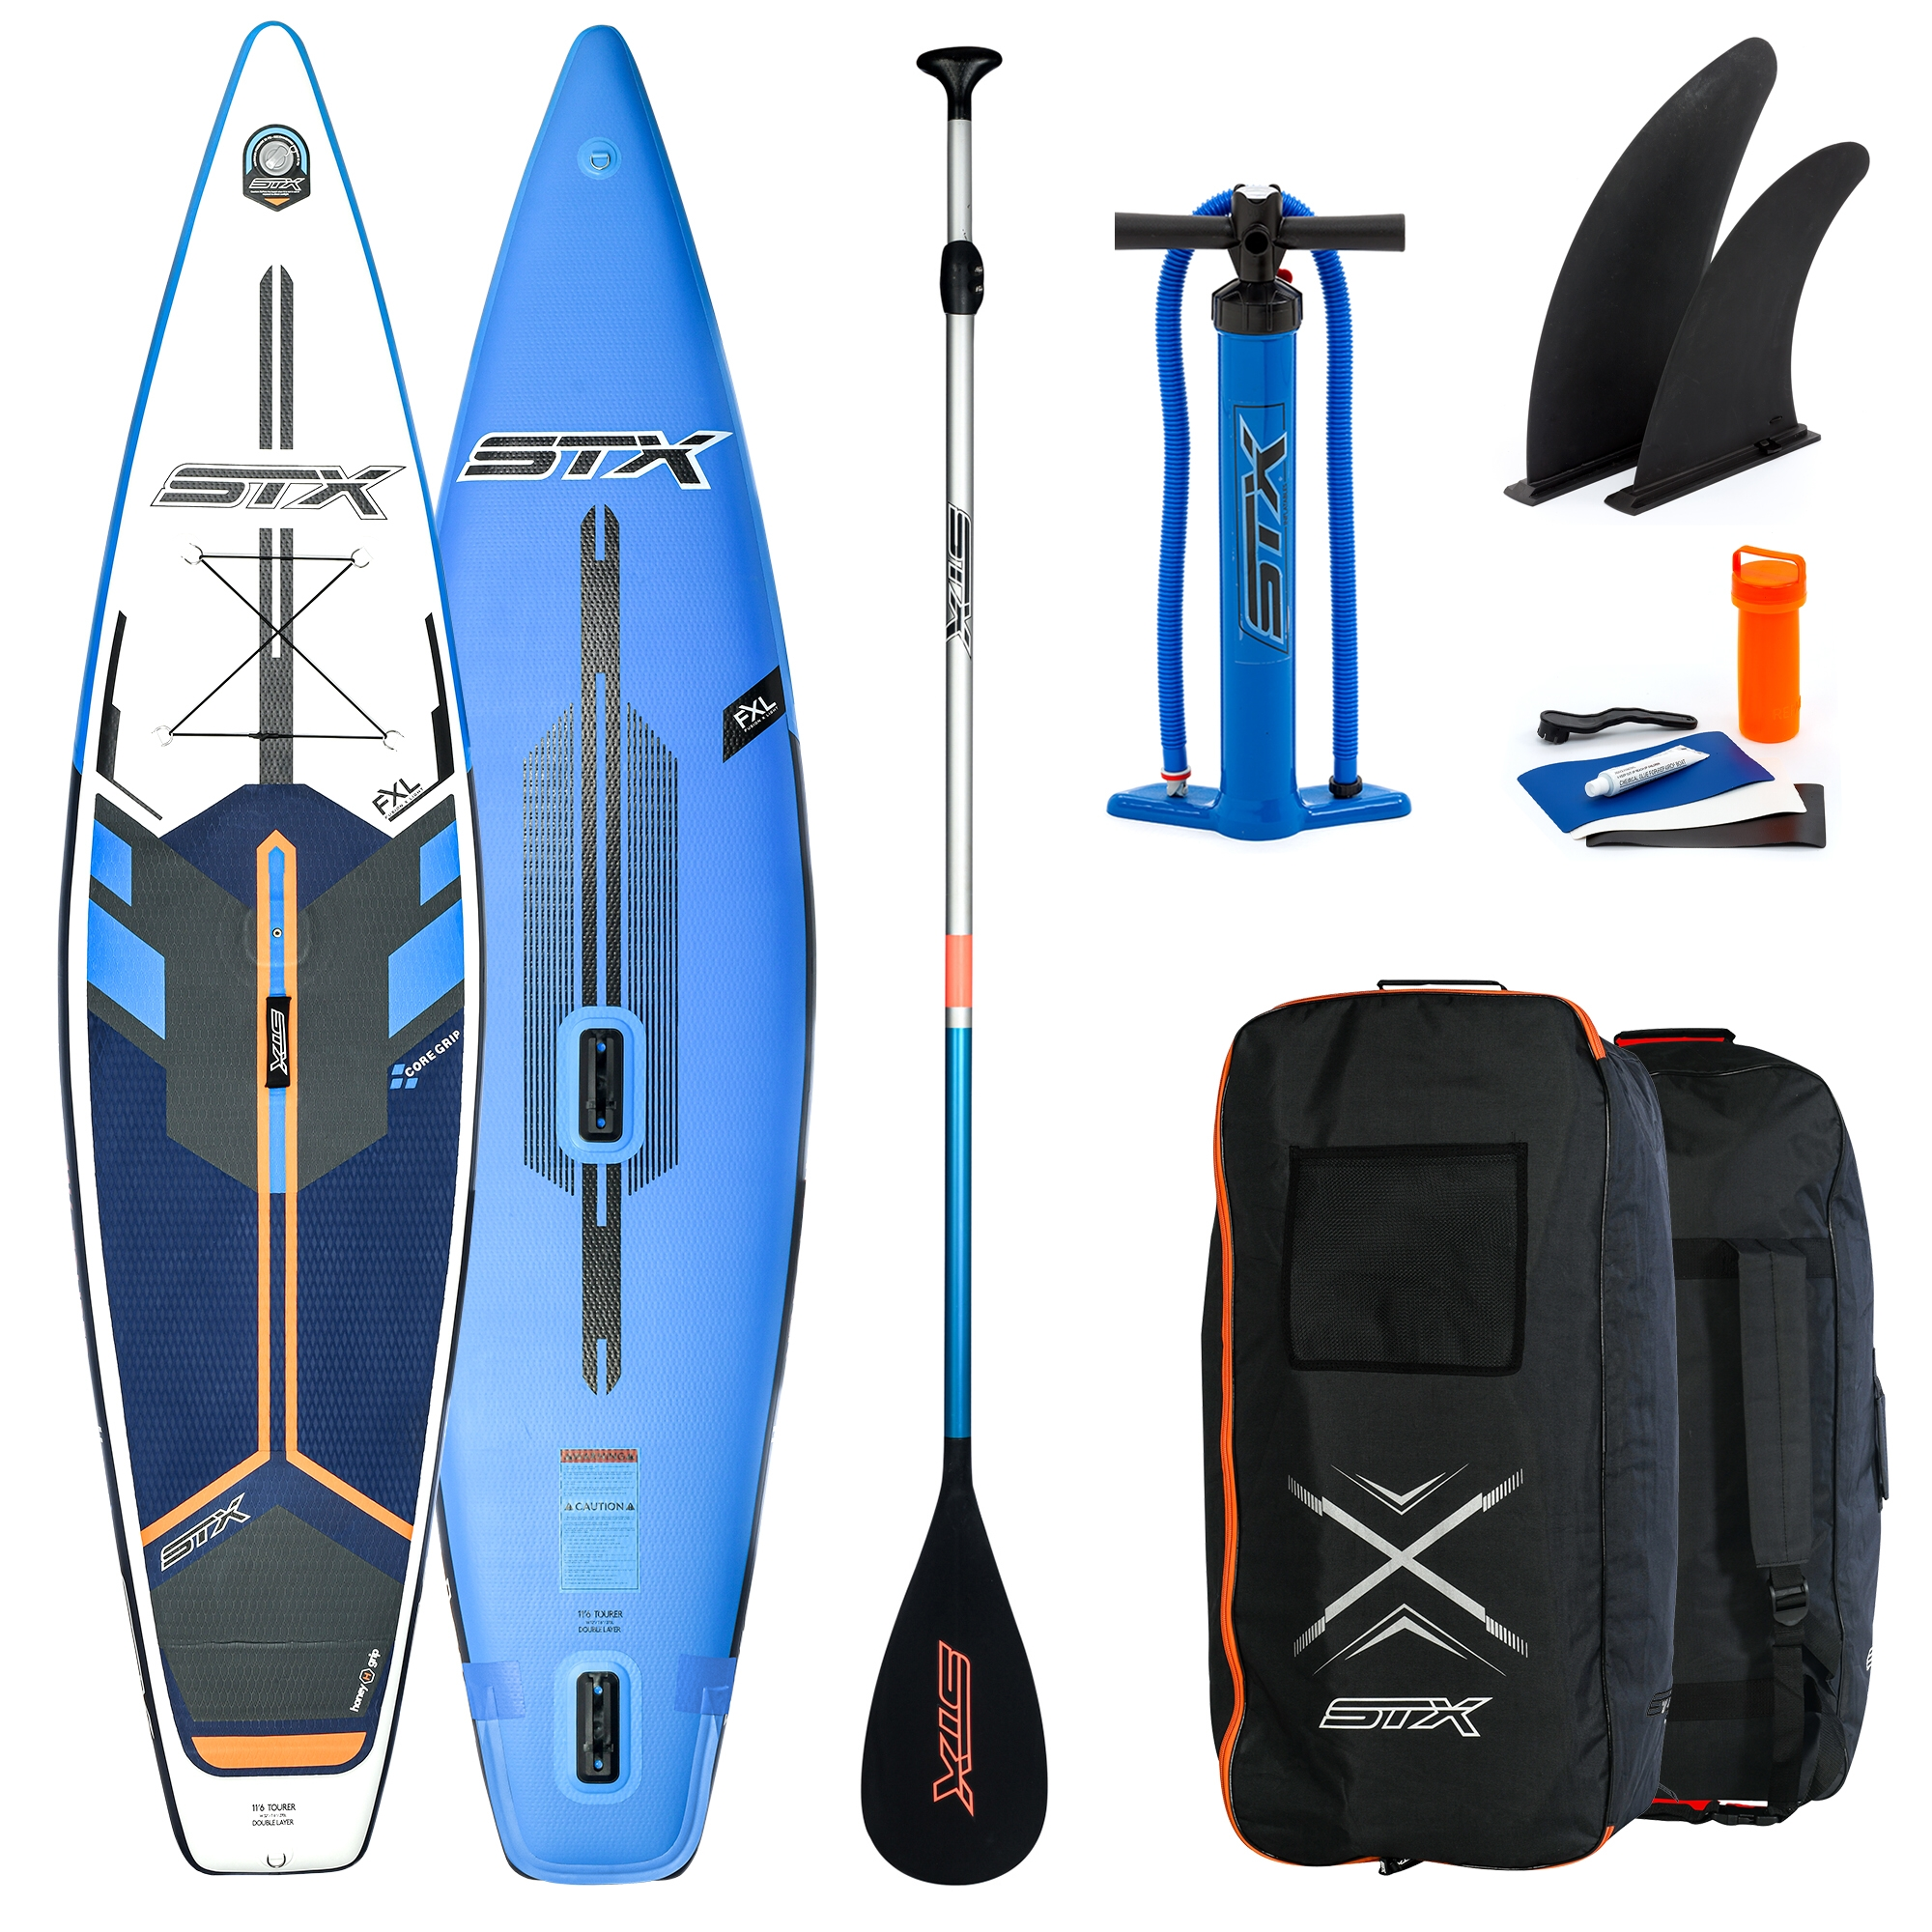 Windsup_STX_Tourer_11_6_blue_set.jpg